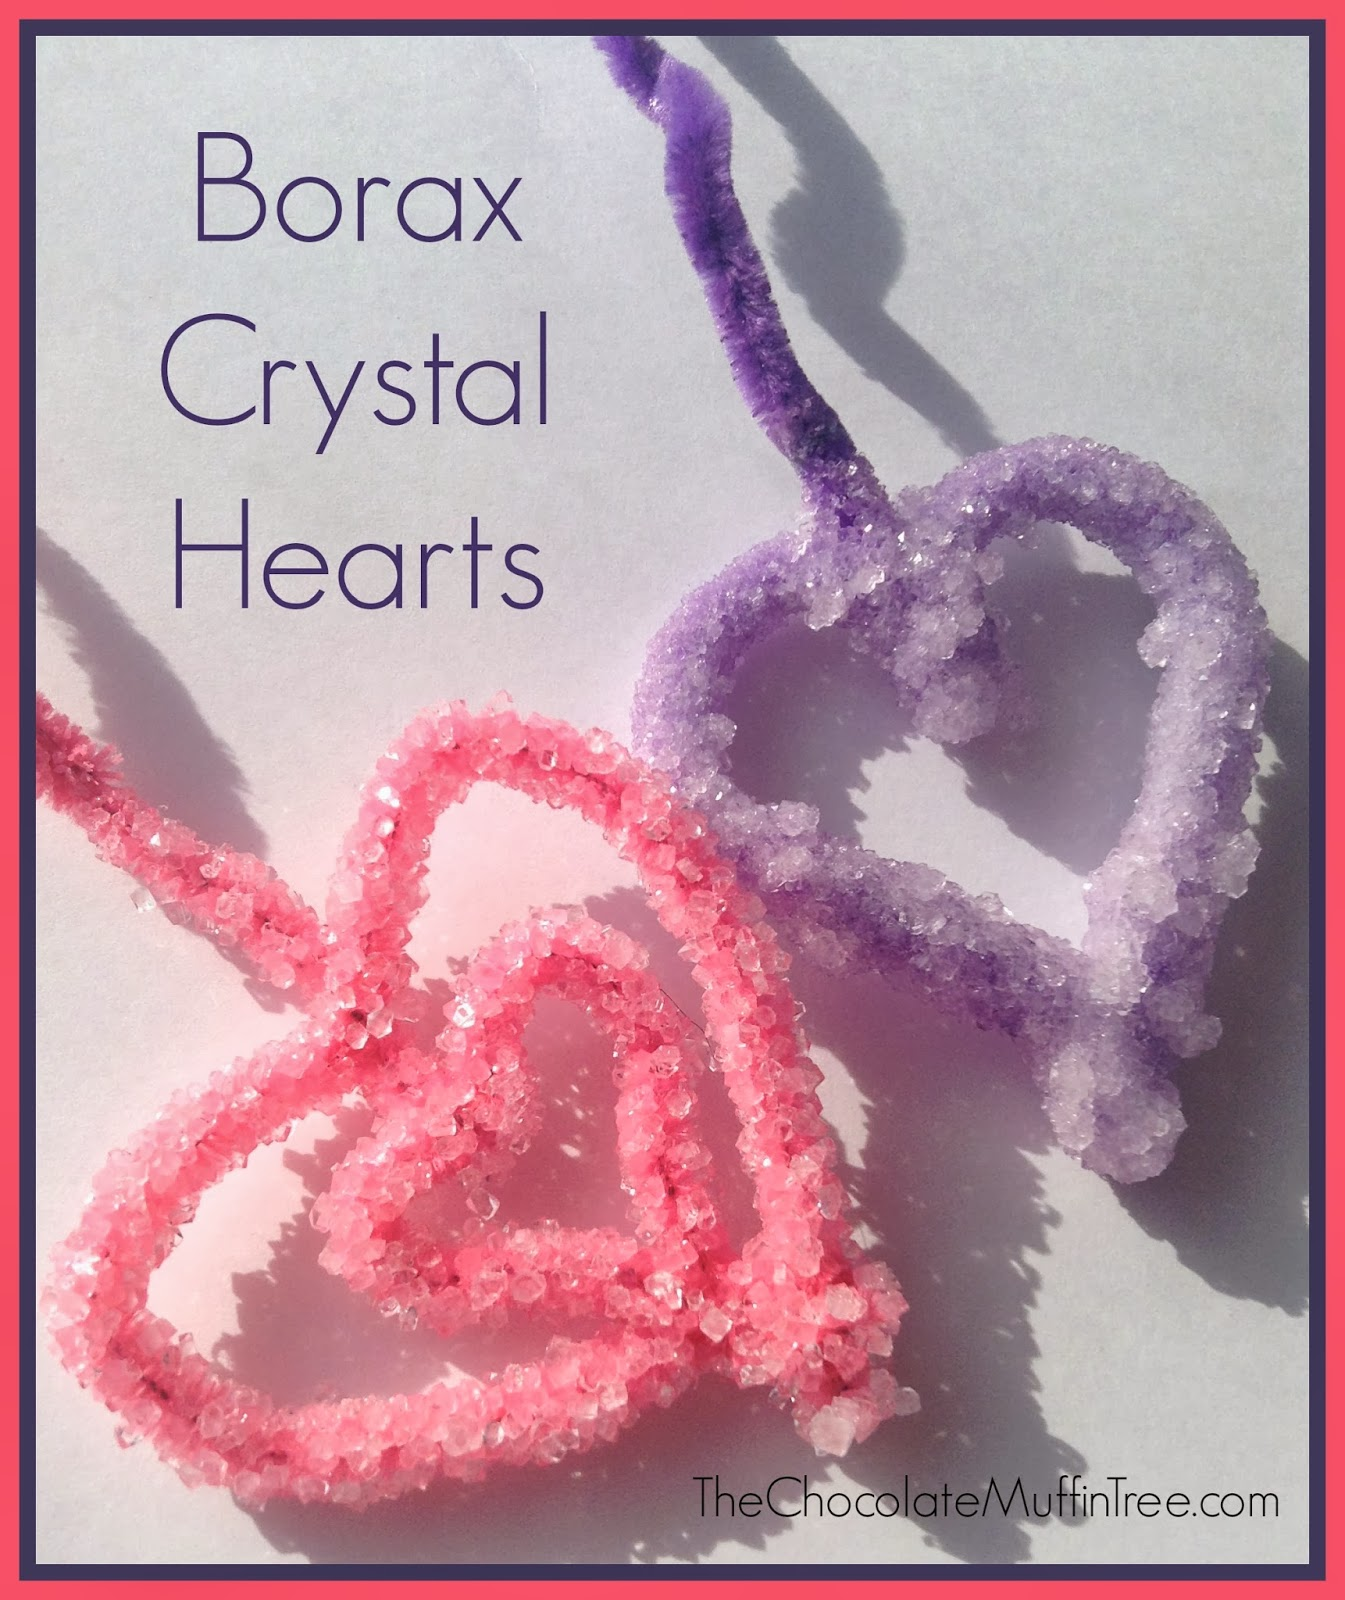 borax crystals science project How to make borax crystal decorations to impress and amaze the kids  please note that this project uses borax, a common household cleaner/chemical and.